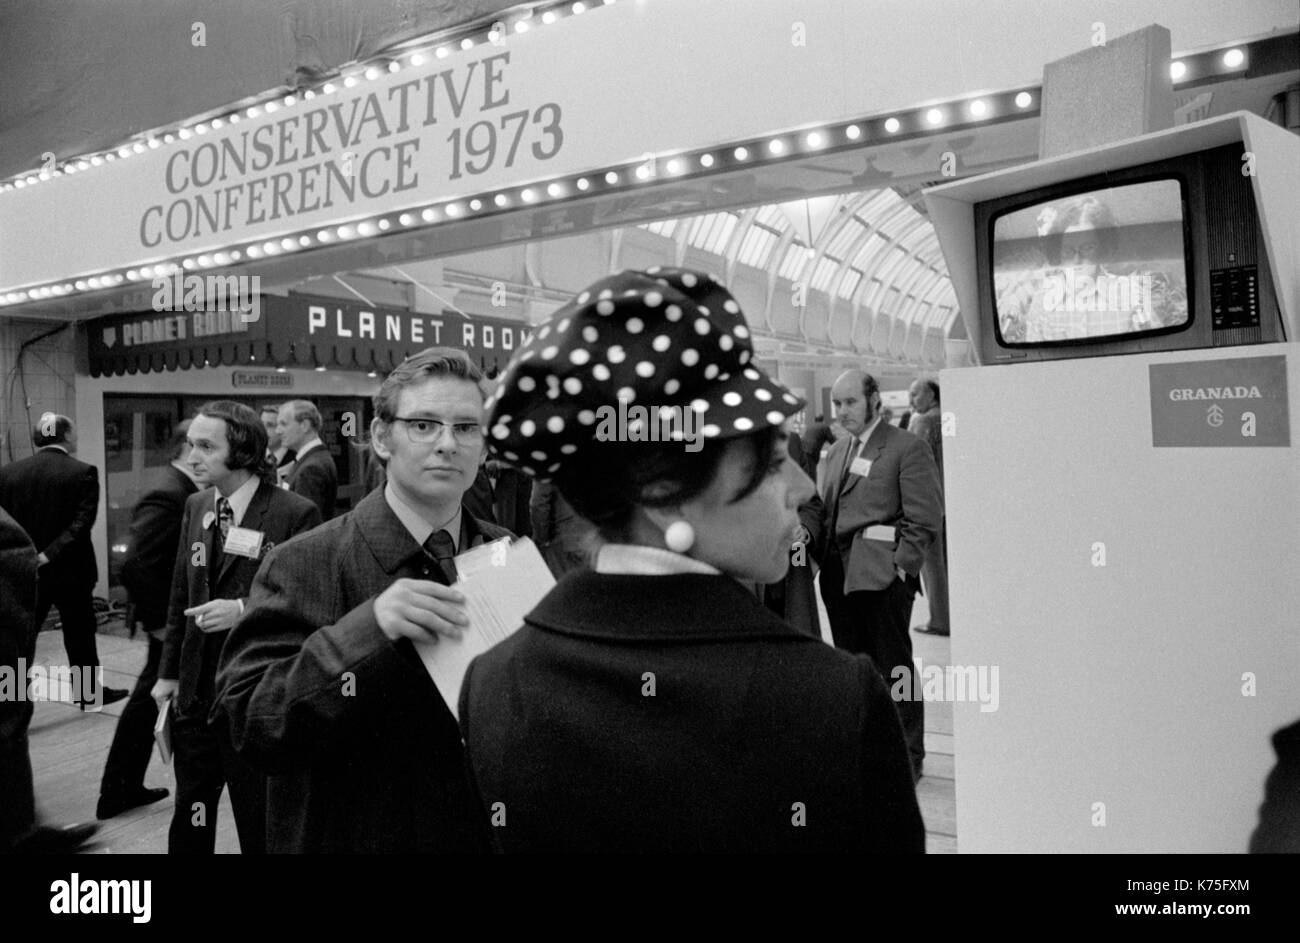 Conservative Party Conference Blackpool Winter Gardens 1973 UK 1970s England HOMER SYKES - Stock Image